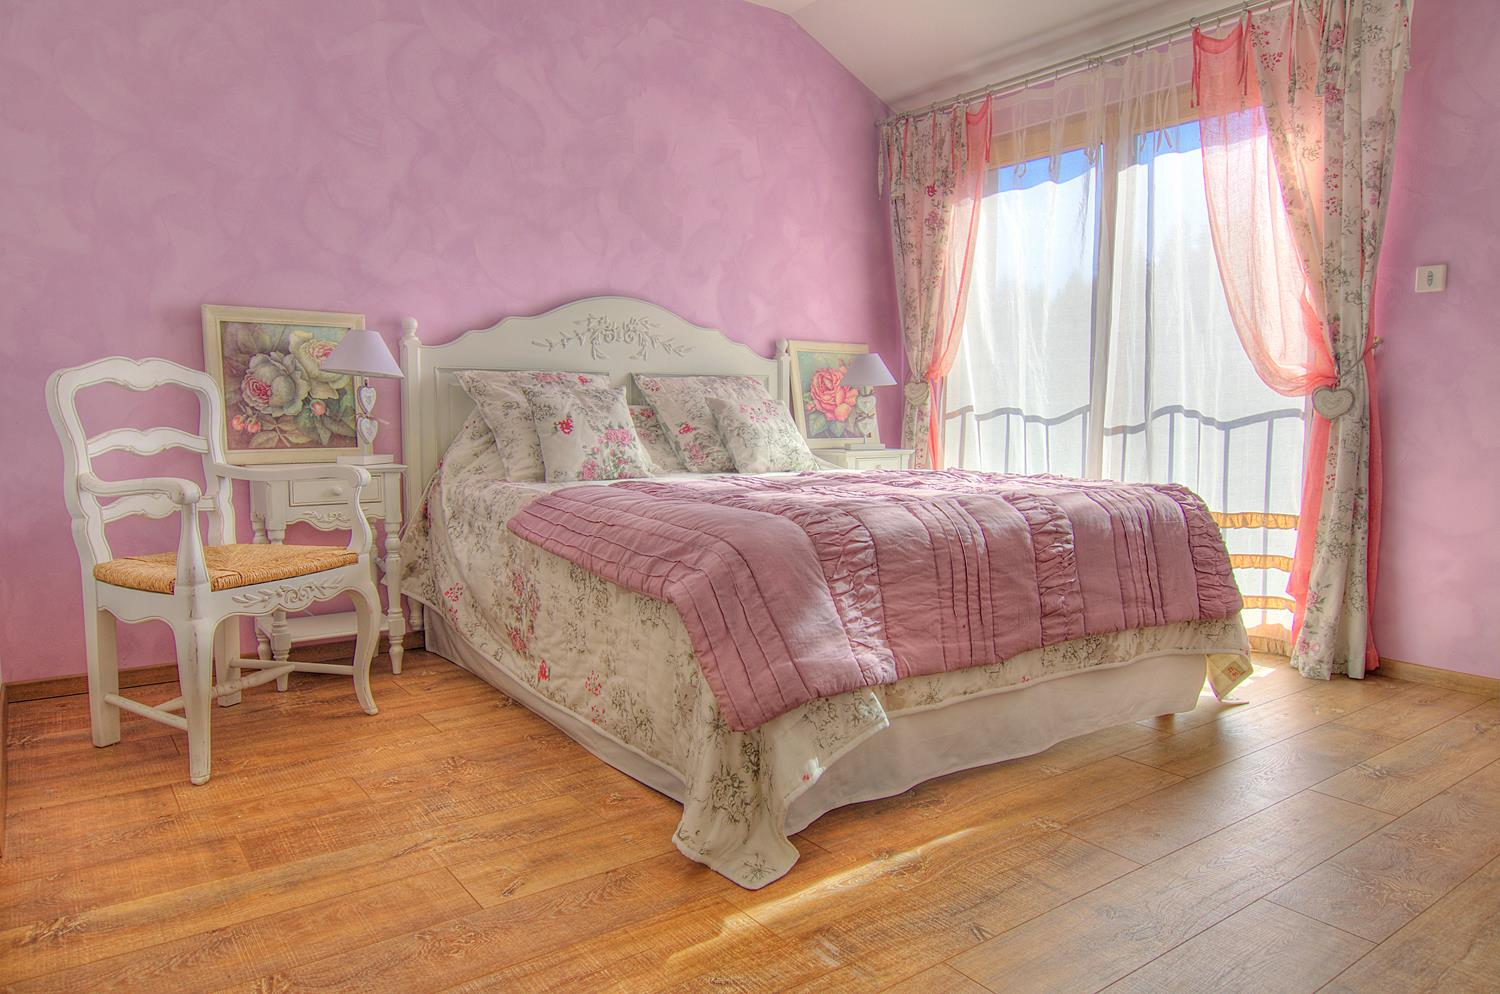 Charming B&B Romance breakfast included + 1 access SPA (for 2 pers.)